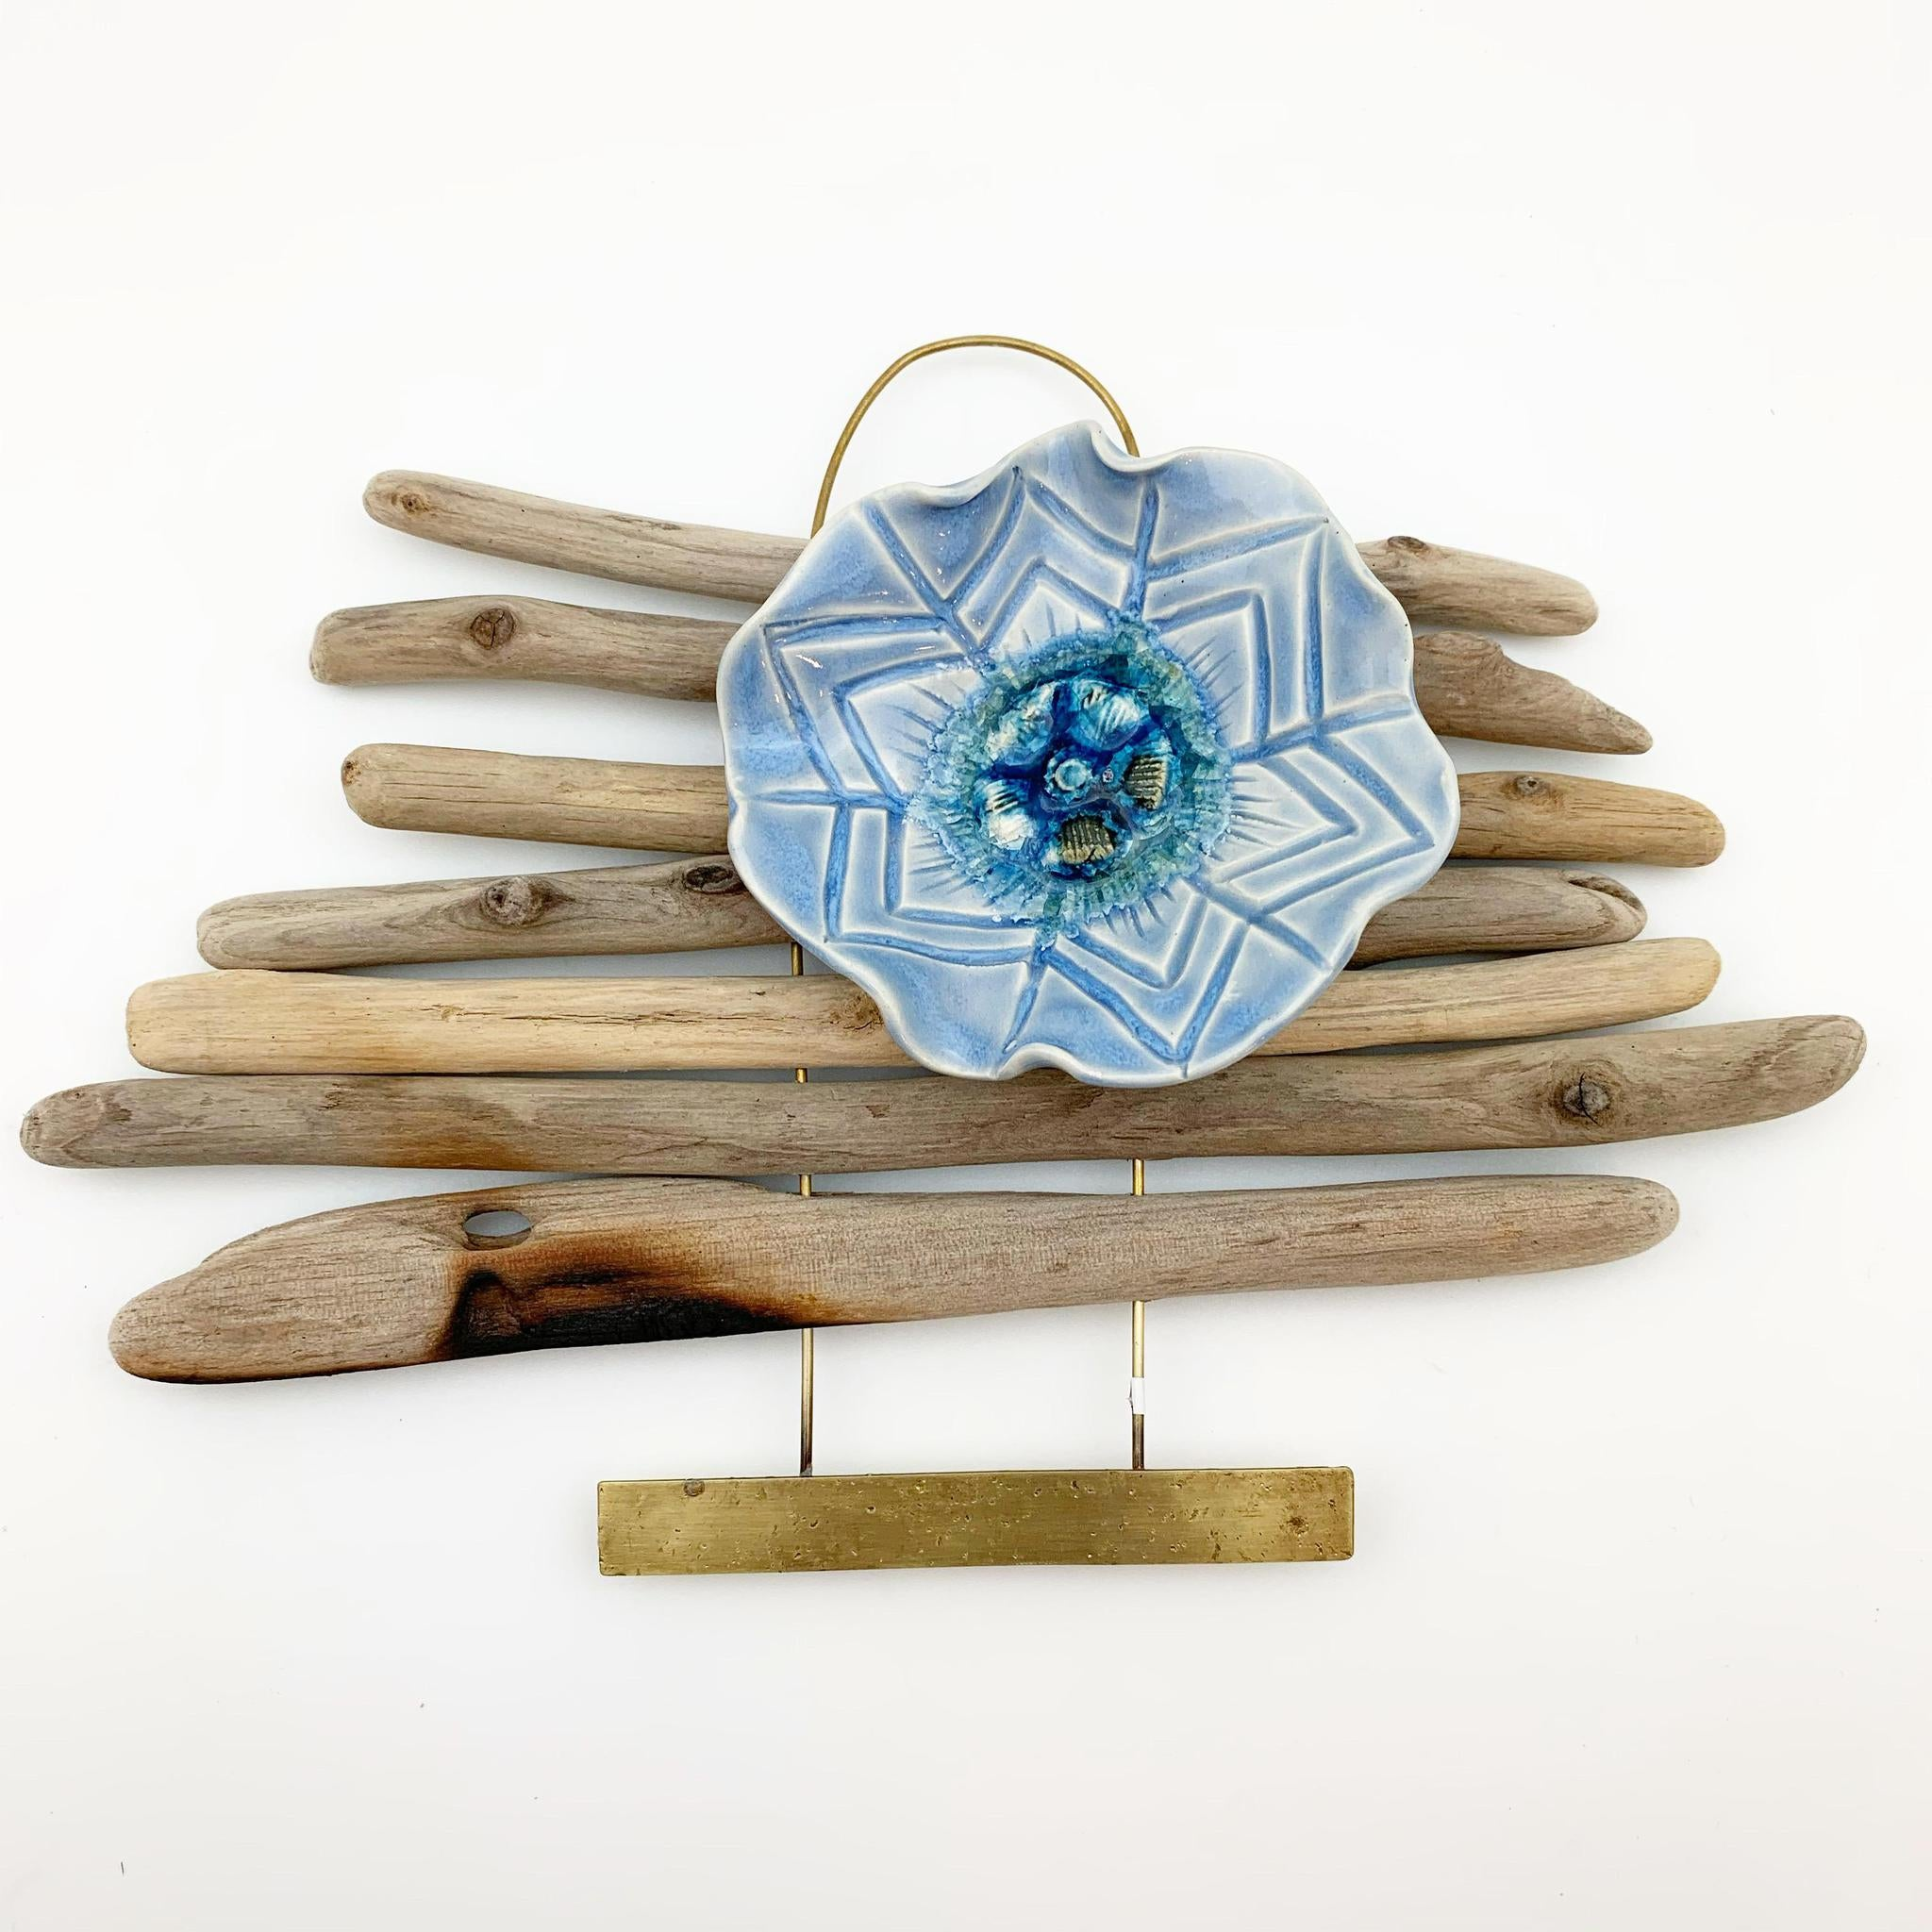 Wall Art - Driftwood and Ceramic Totem - Small